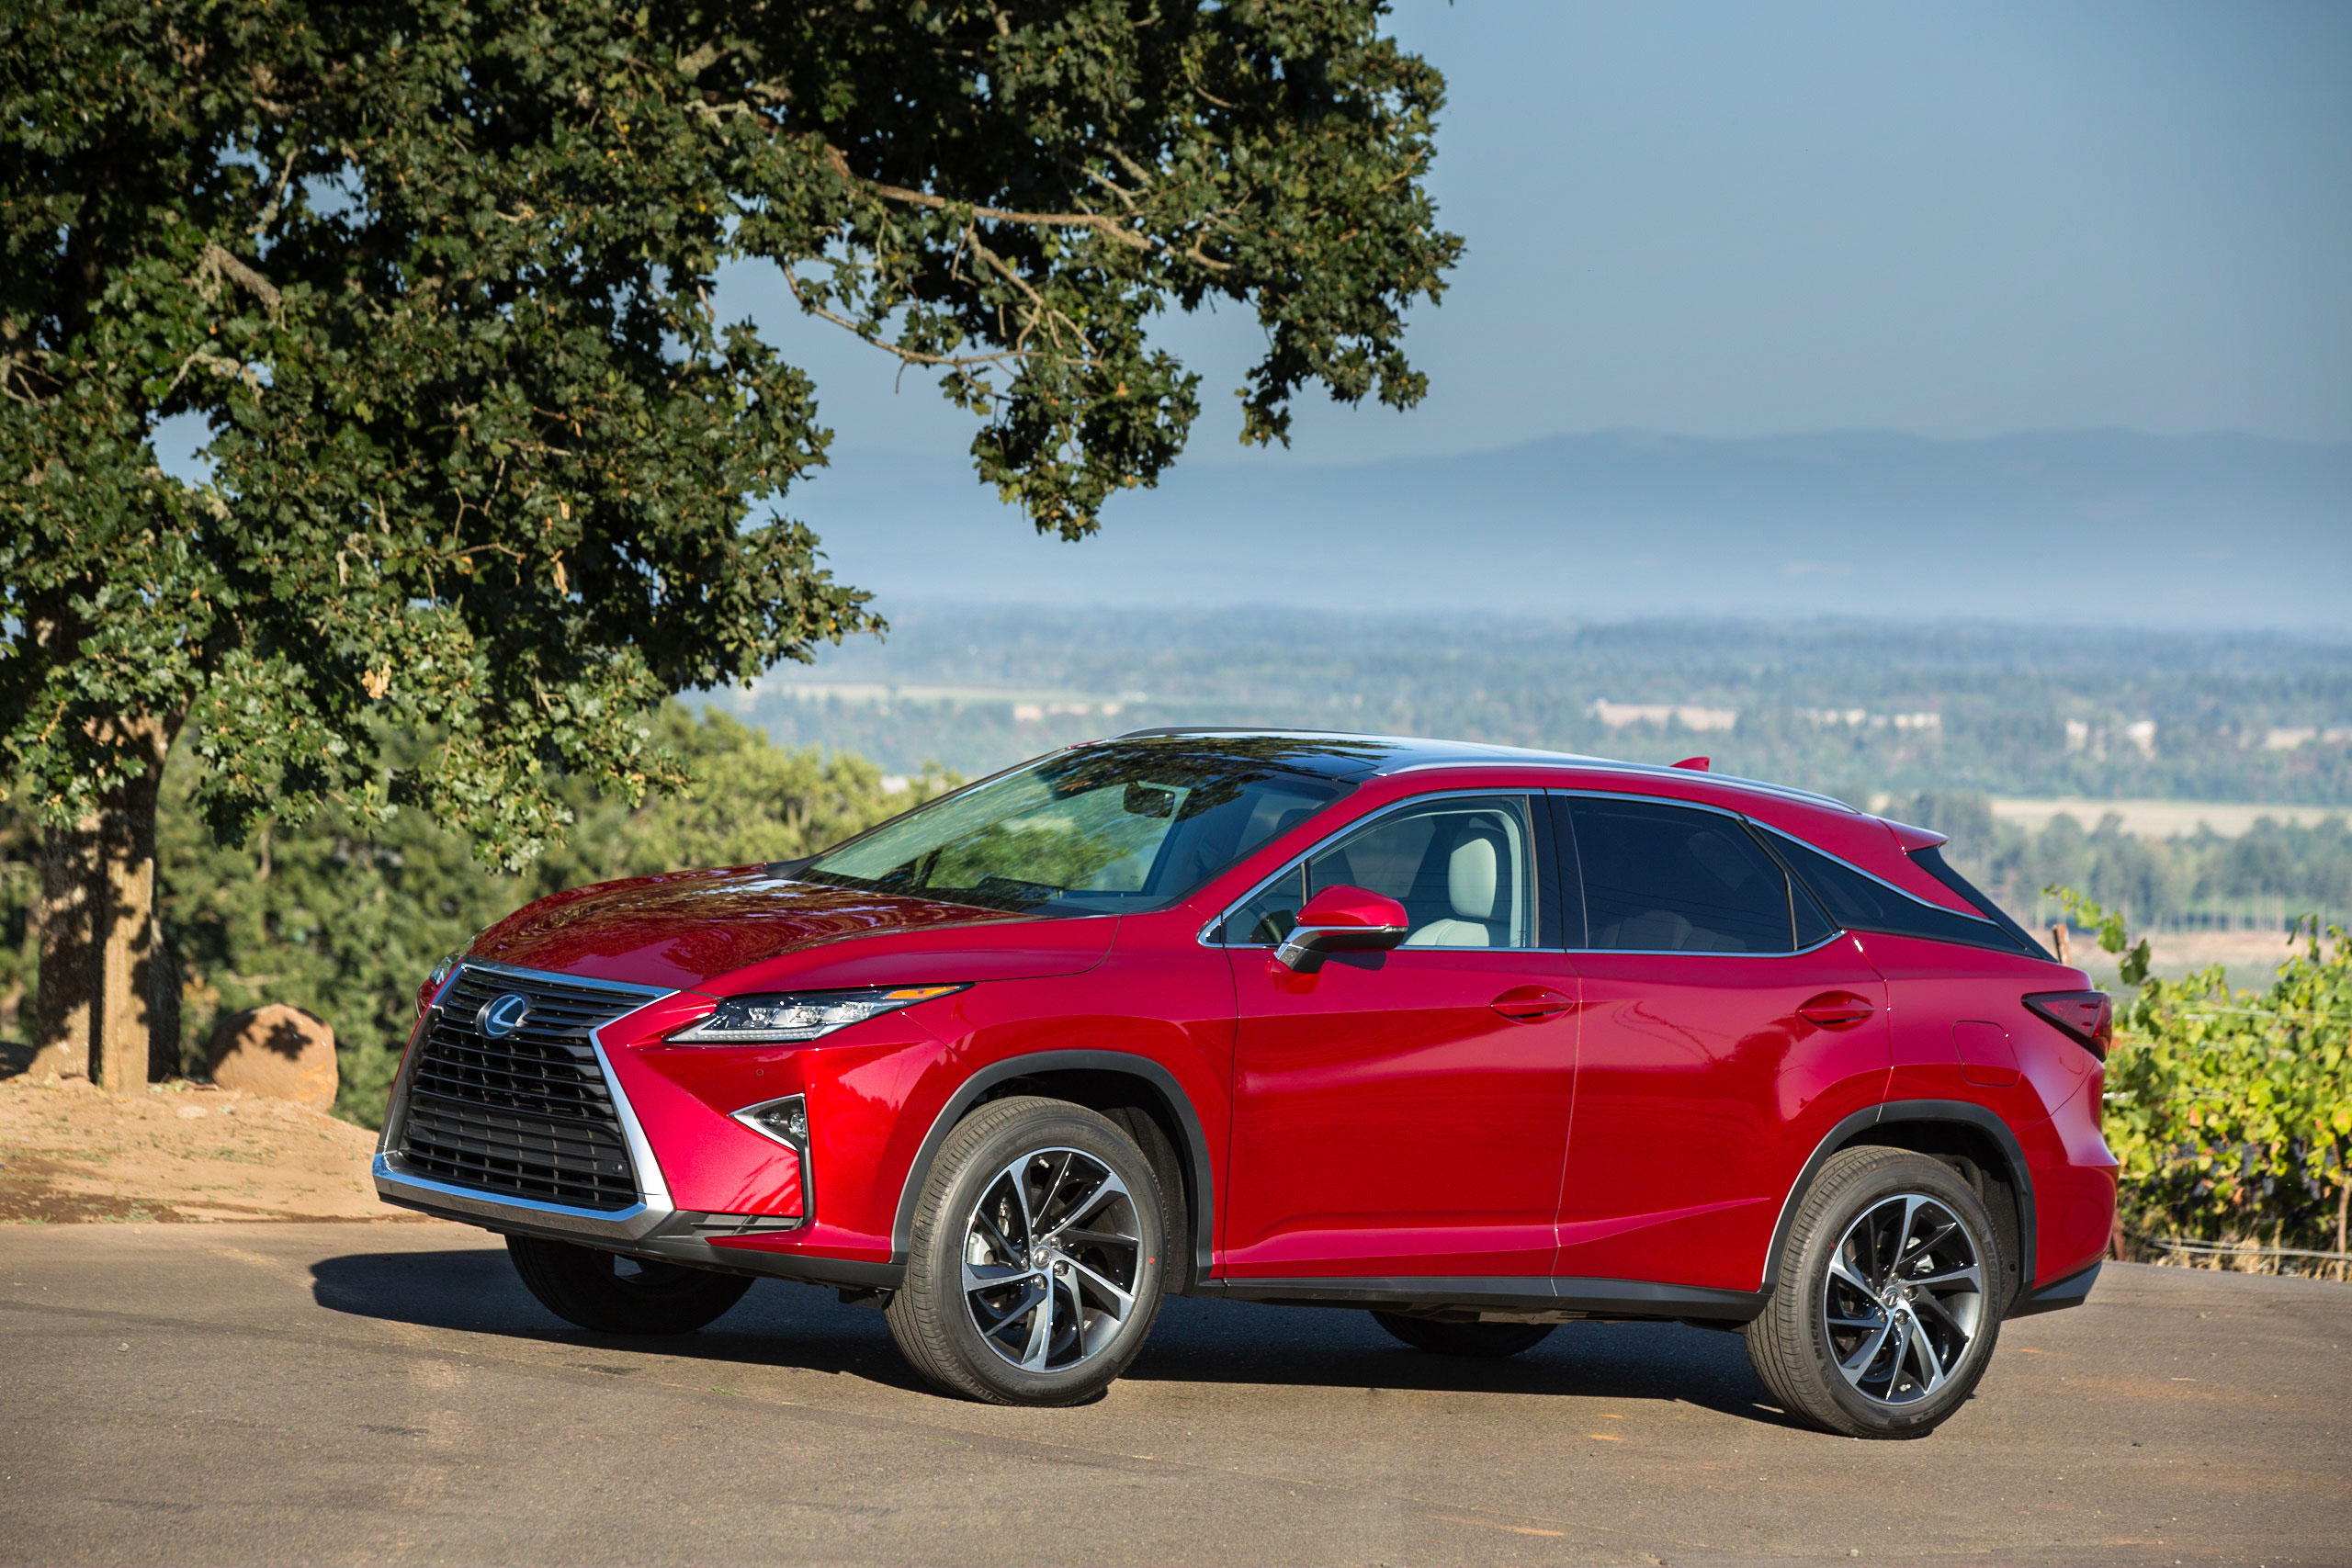 suvs future out the features rx sale is we of hybrid suv find for drives review drive to lexus